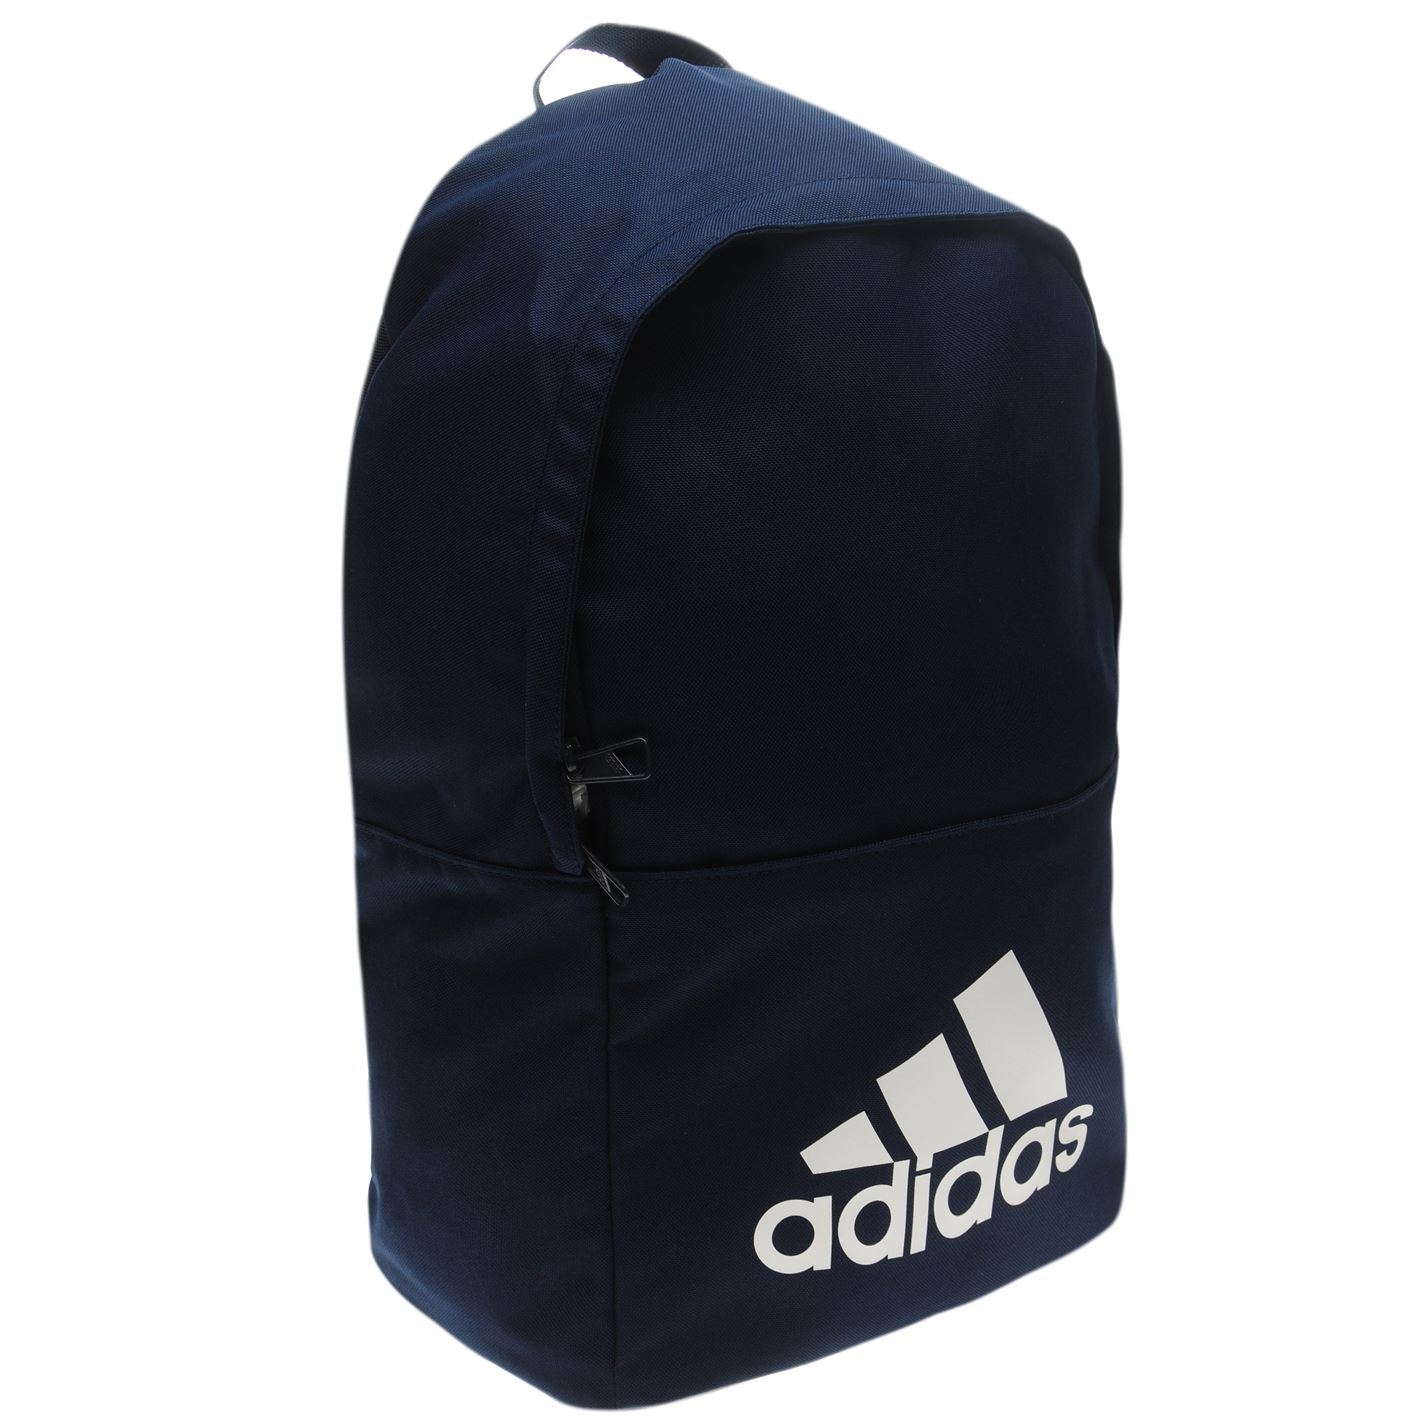 adidas Power Back Pack Travel Luggage Everyday Casual Bag Accessories Navy  One Size 713008. About this product. Picture 1 of 2  Picture 2 of 2 6db0527588b28